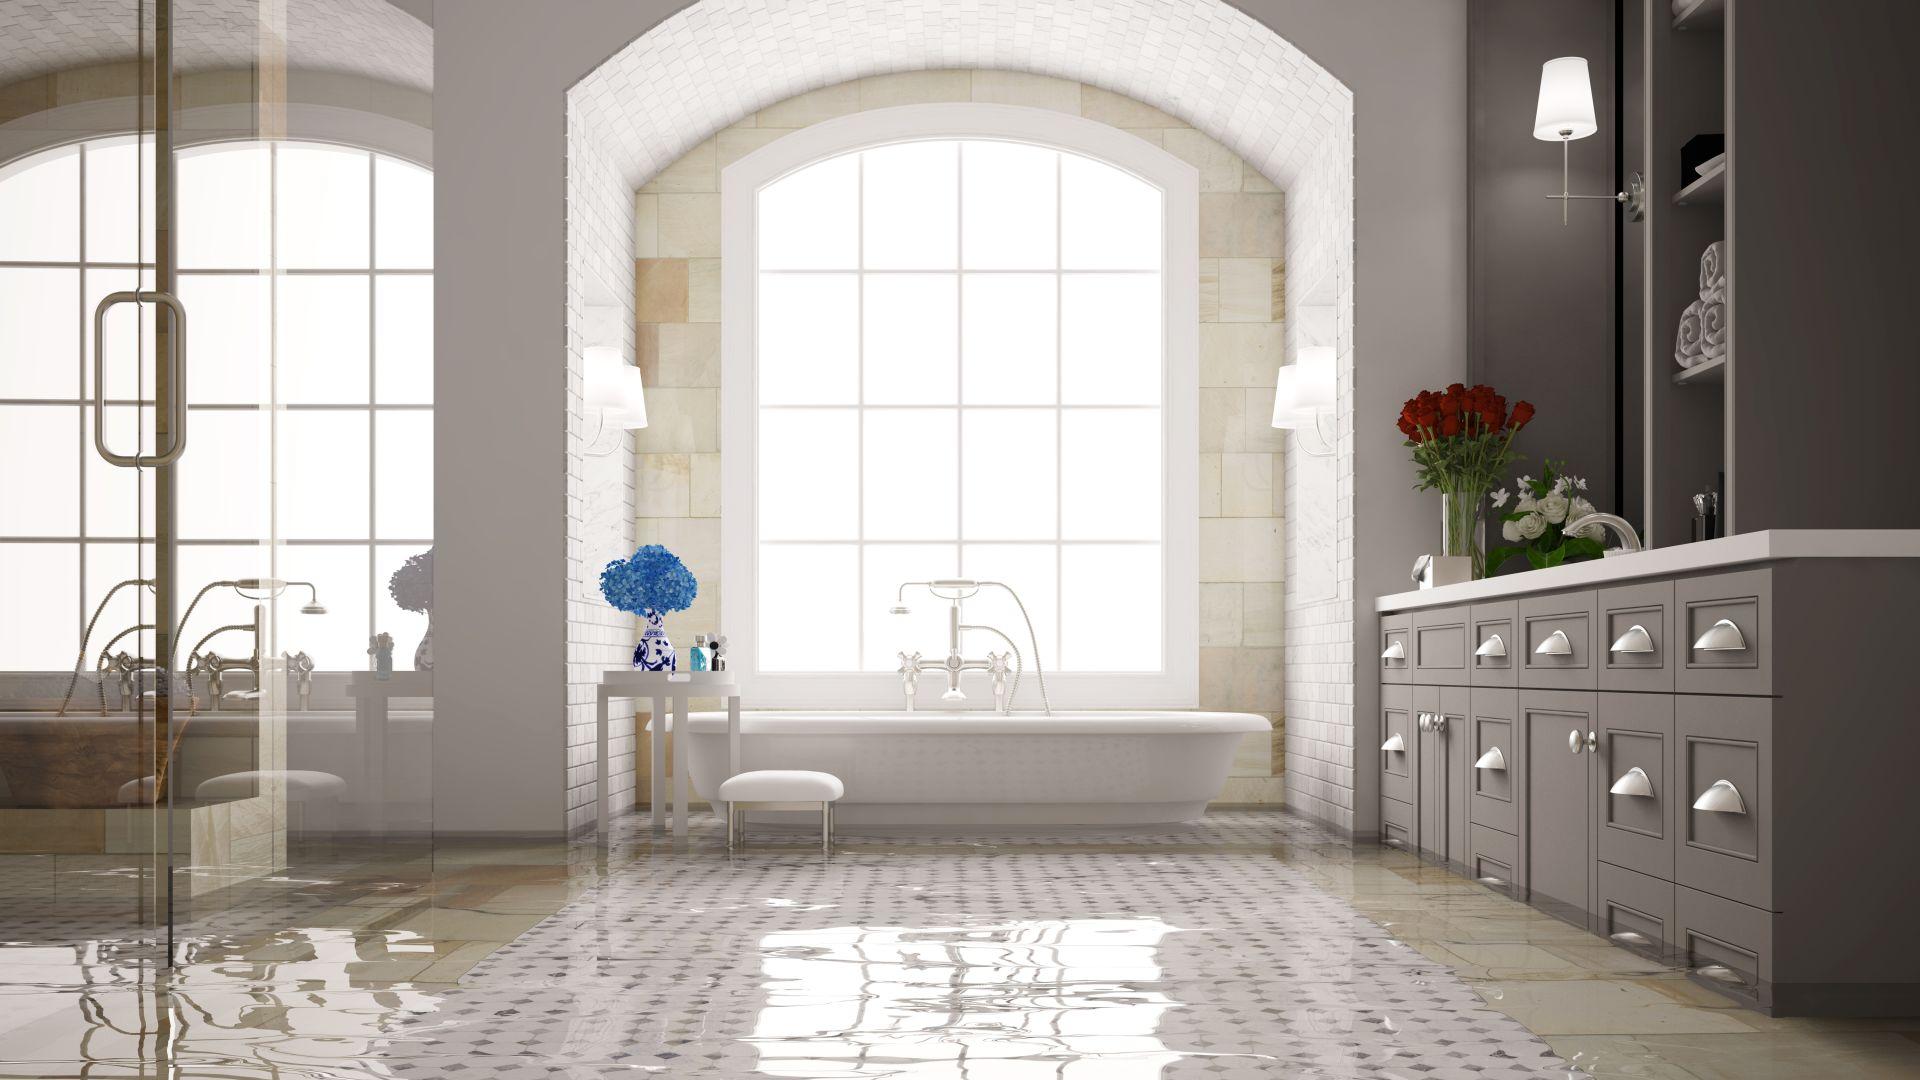 My Tiled Area Has Flooded - Beaumont Tiles